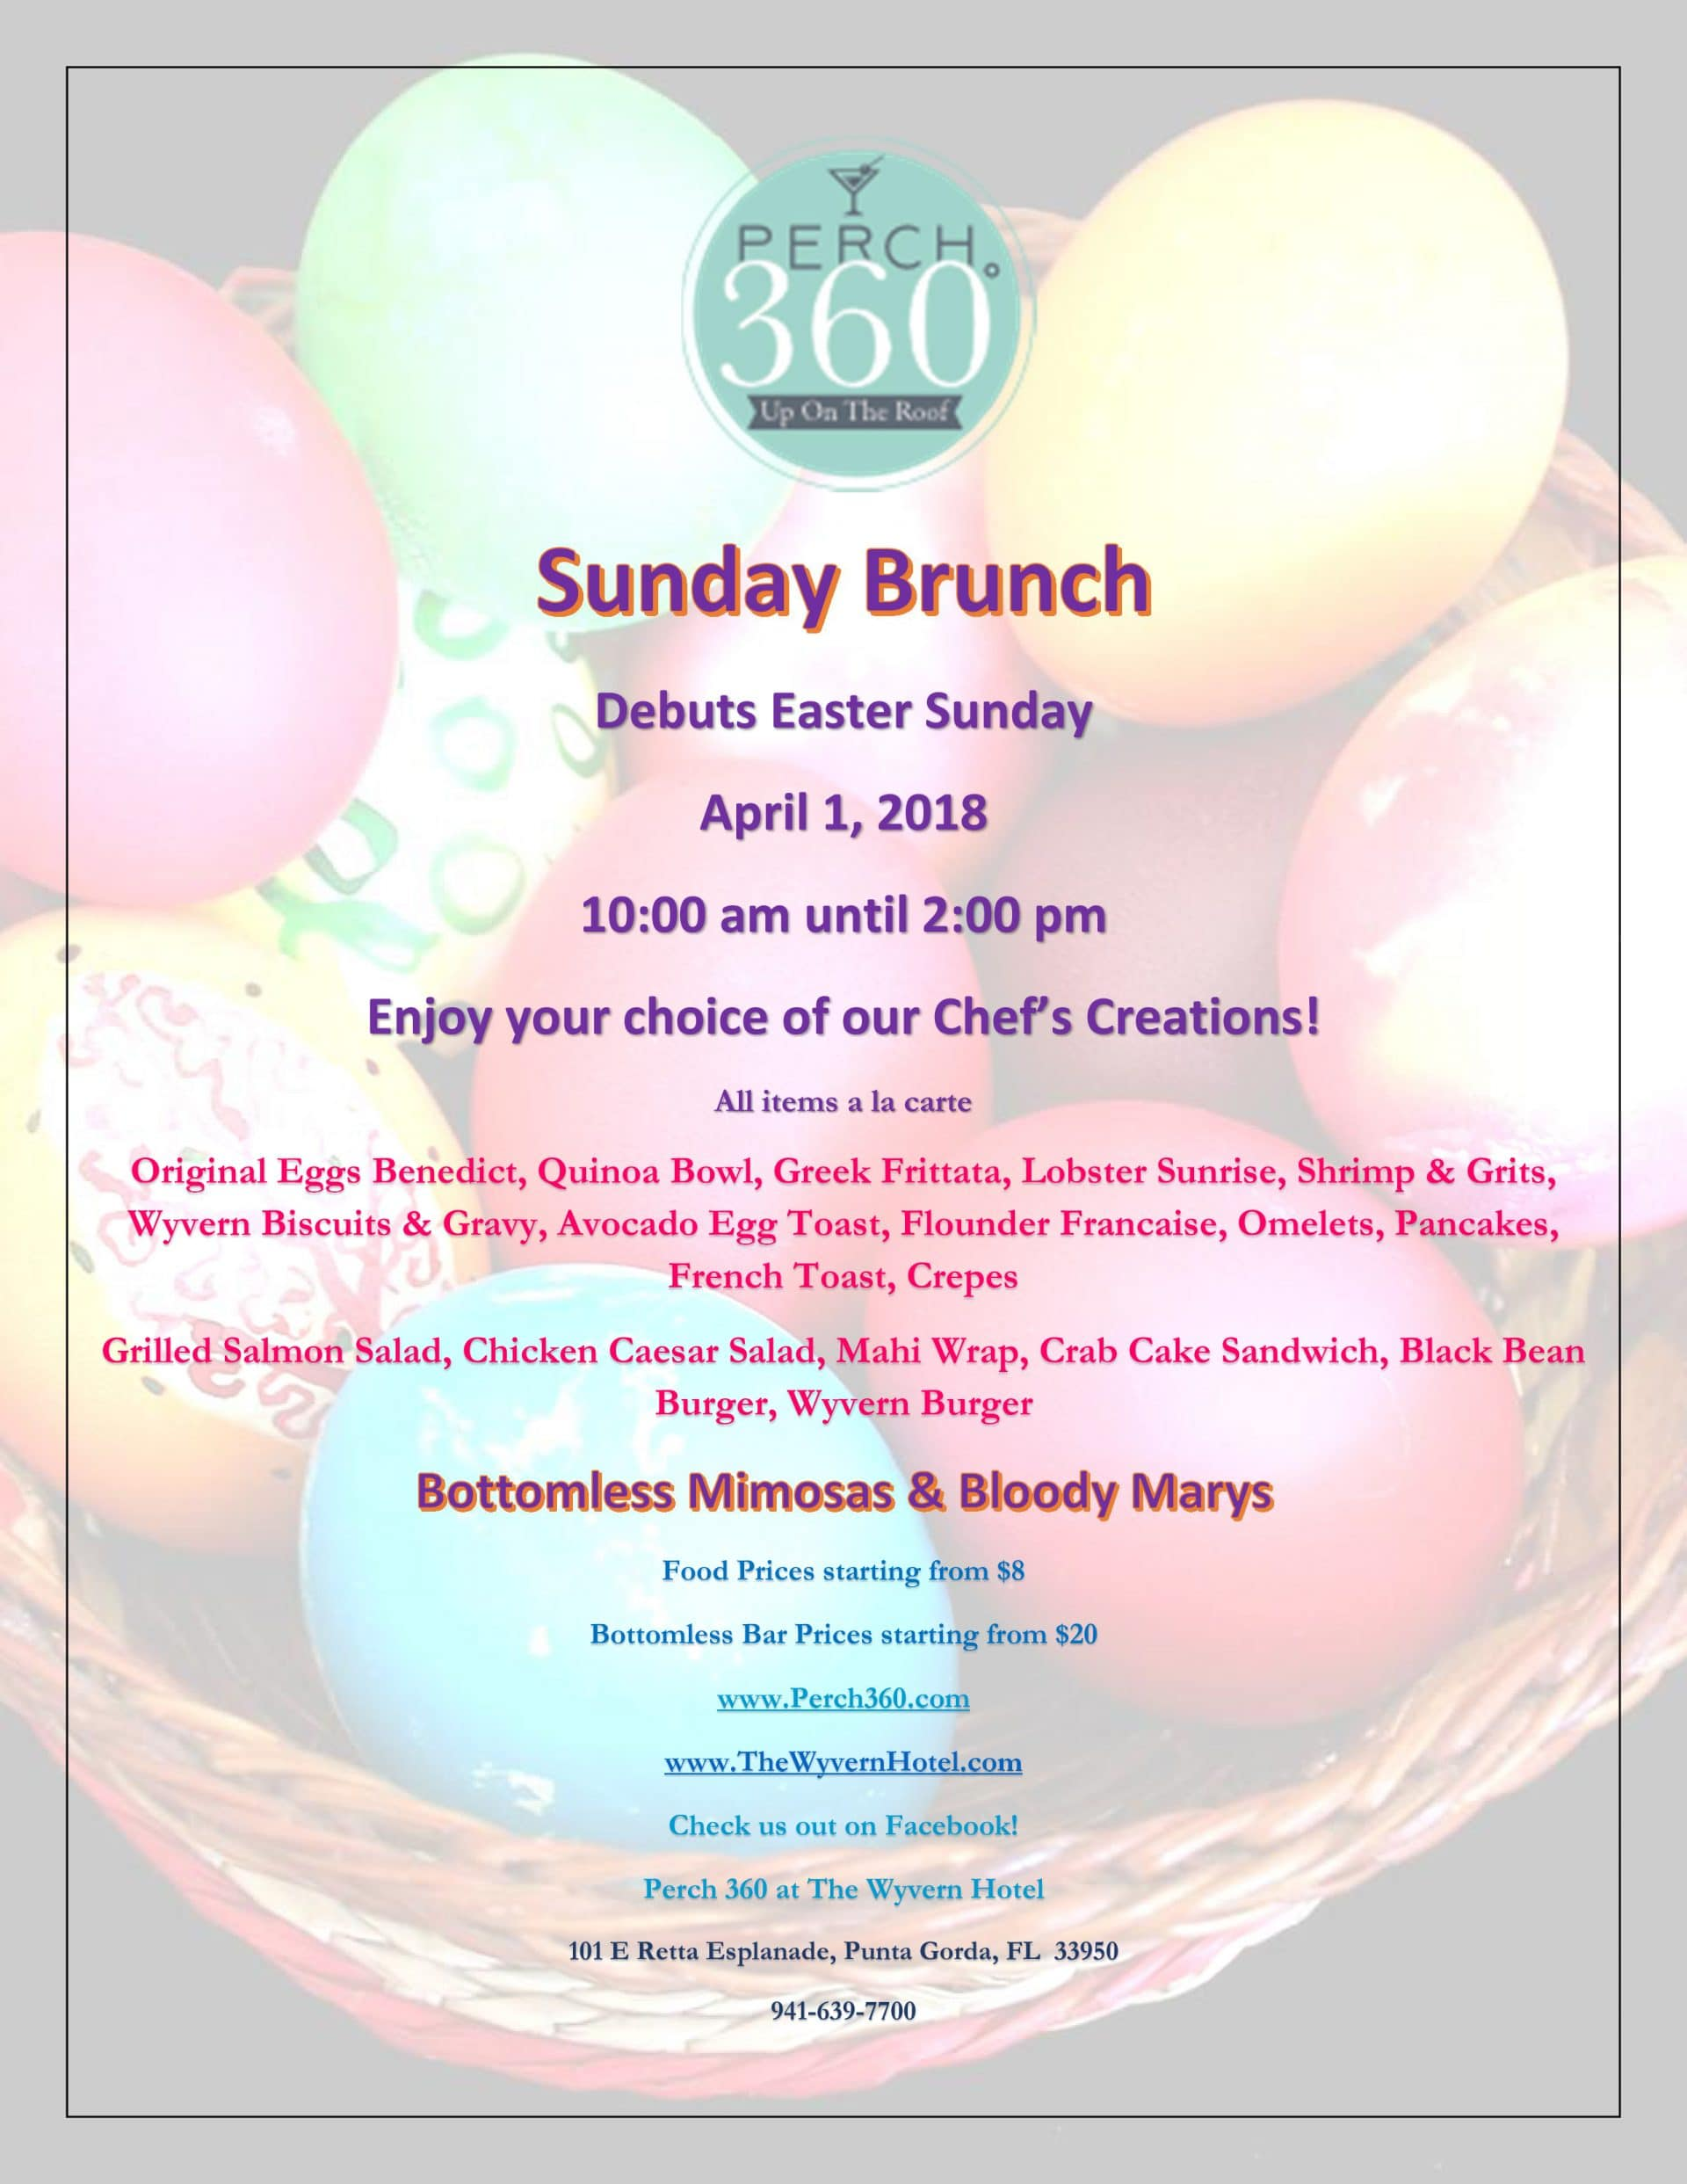 Sunday Brunch Easter